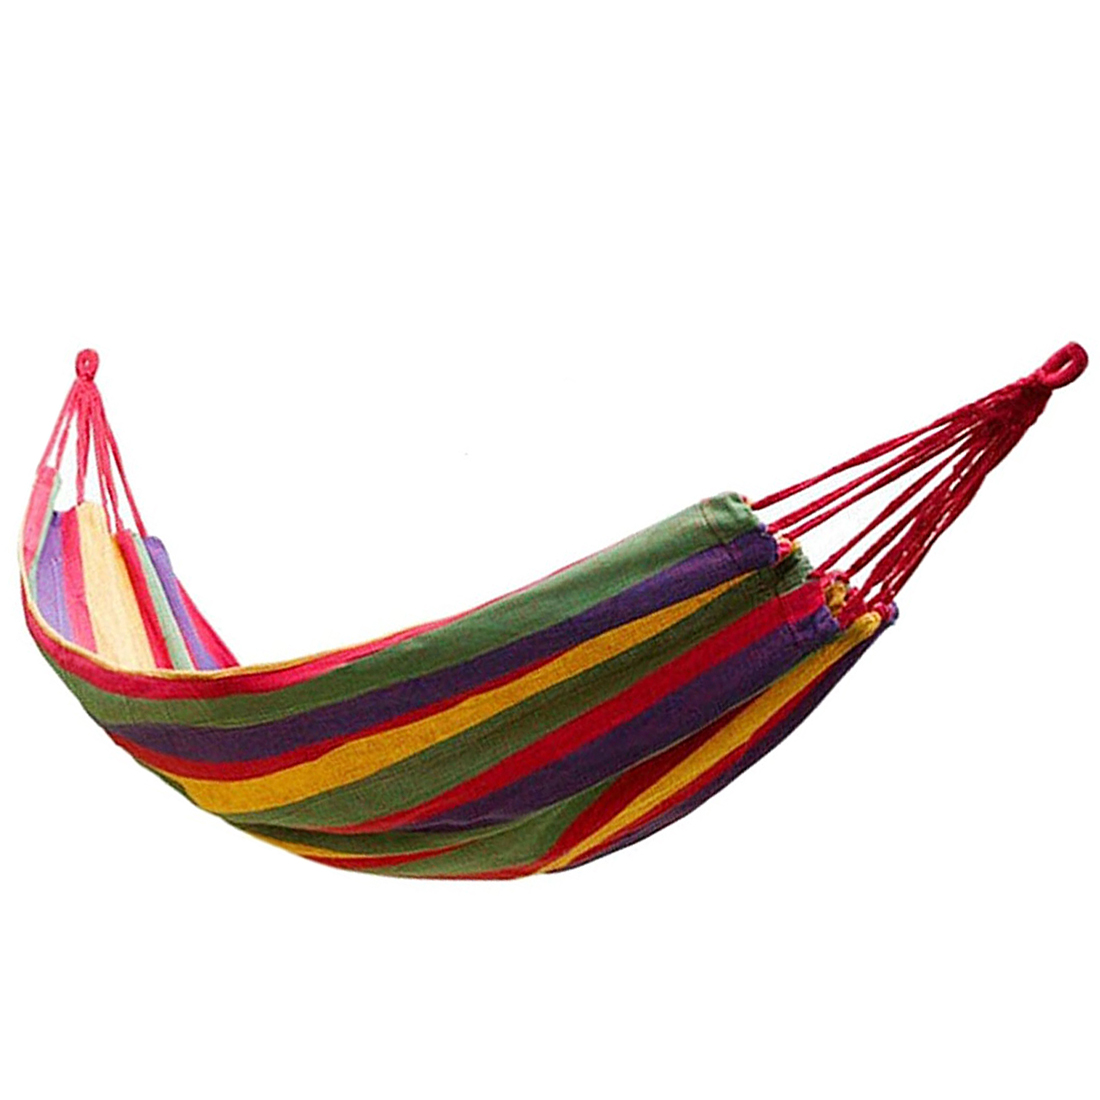 Multicolor Canvas Single Hammock Outdoor Sleeping Gear For Camping Hiking Backpacking Red 200x80cm